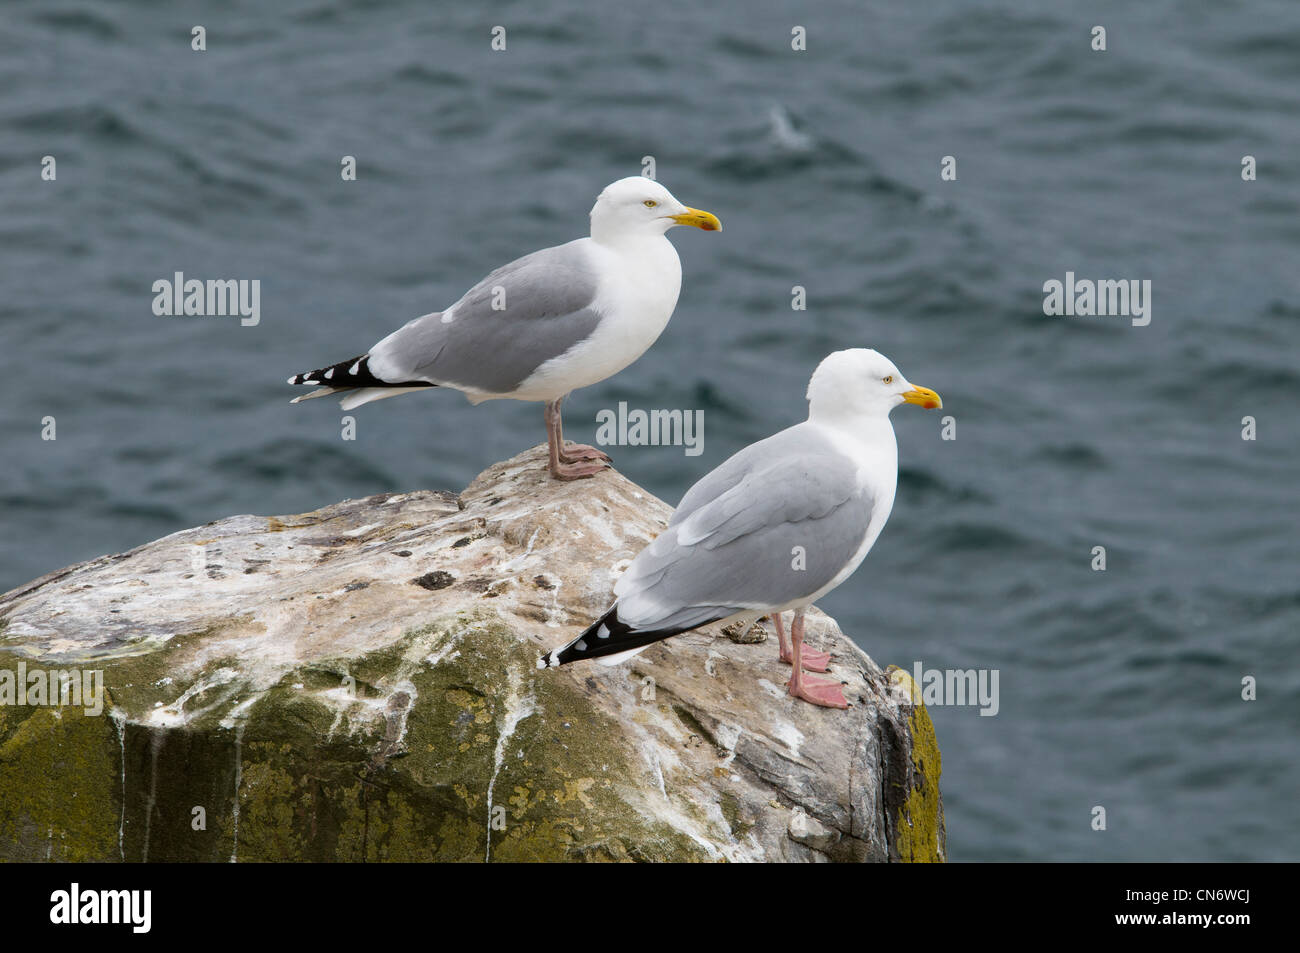 A pair of herring gulls (Larus argentatus) standing on a rocky outcrop on Inner Farne, Northumberland. May. - Stock Image